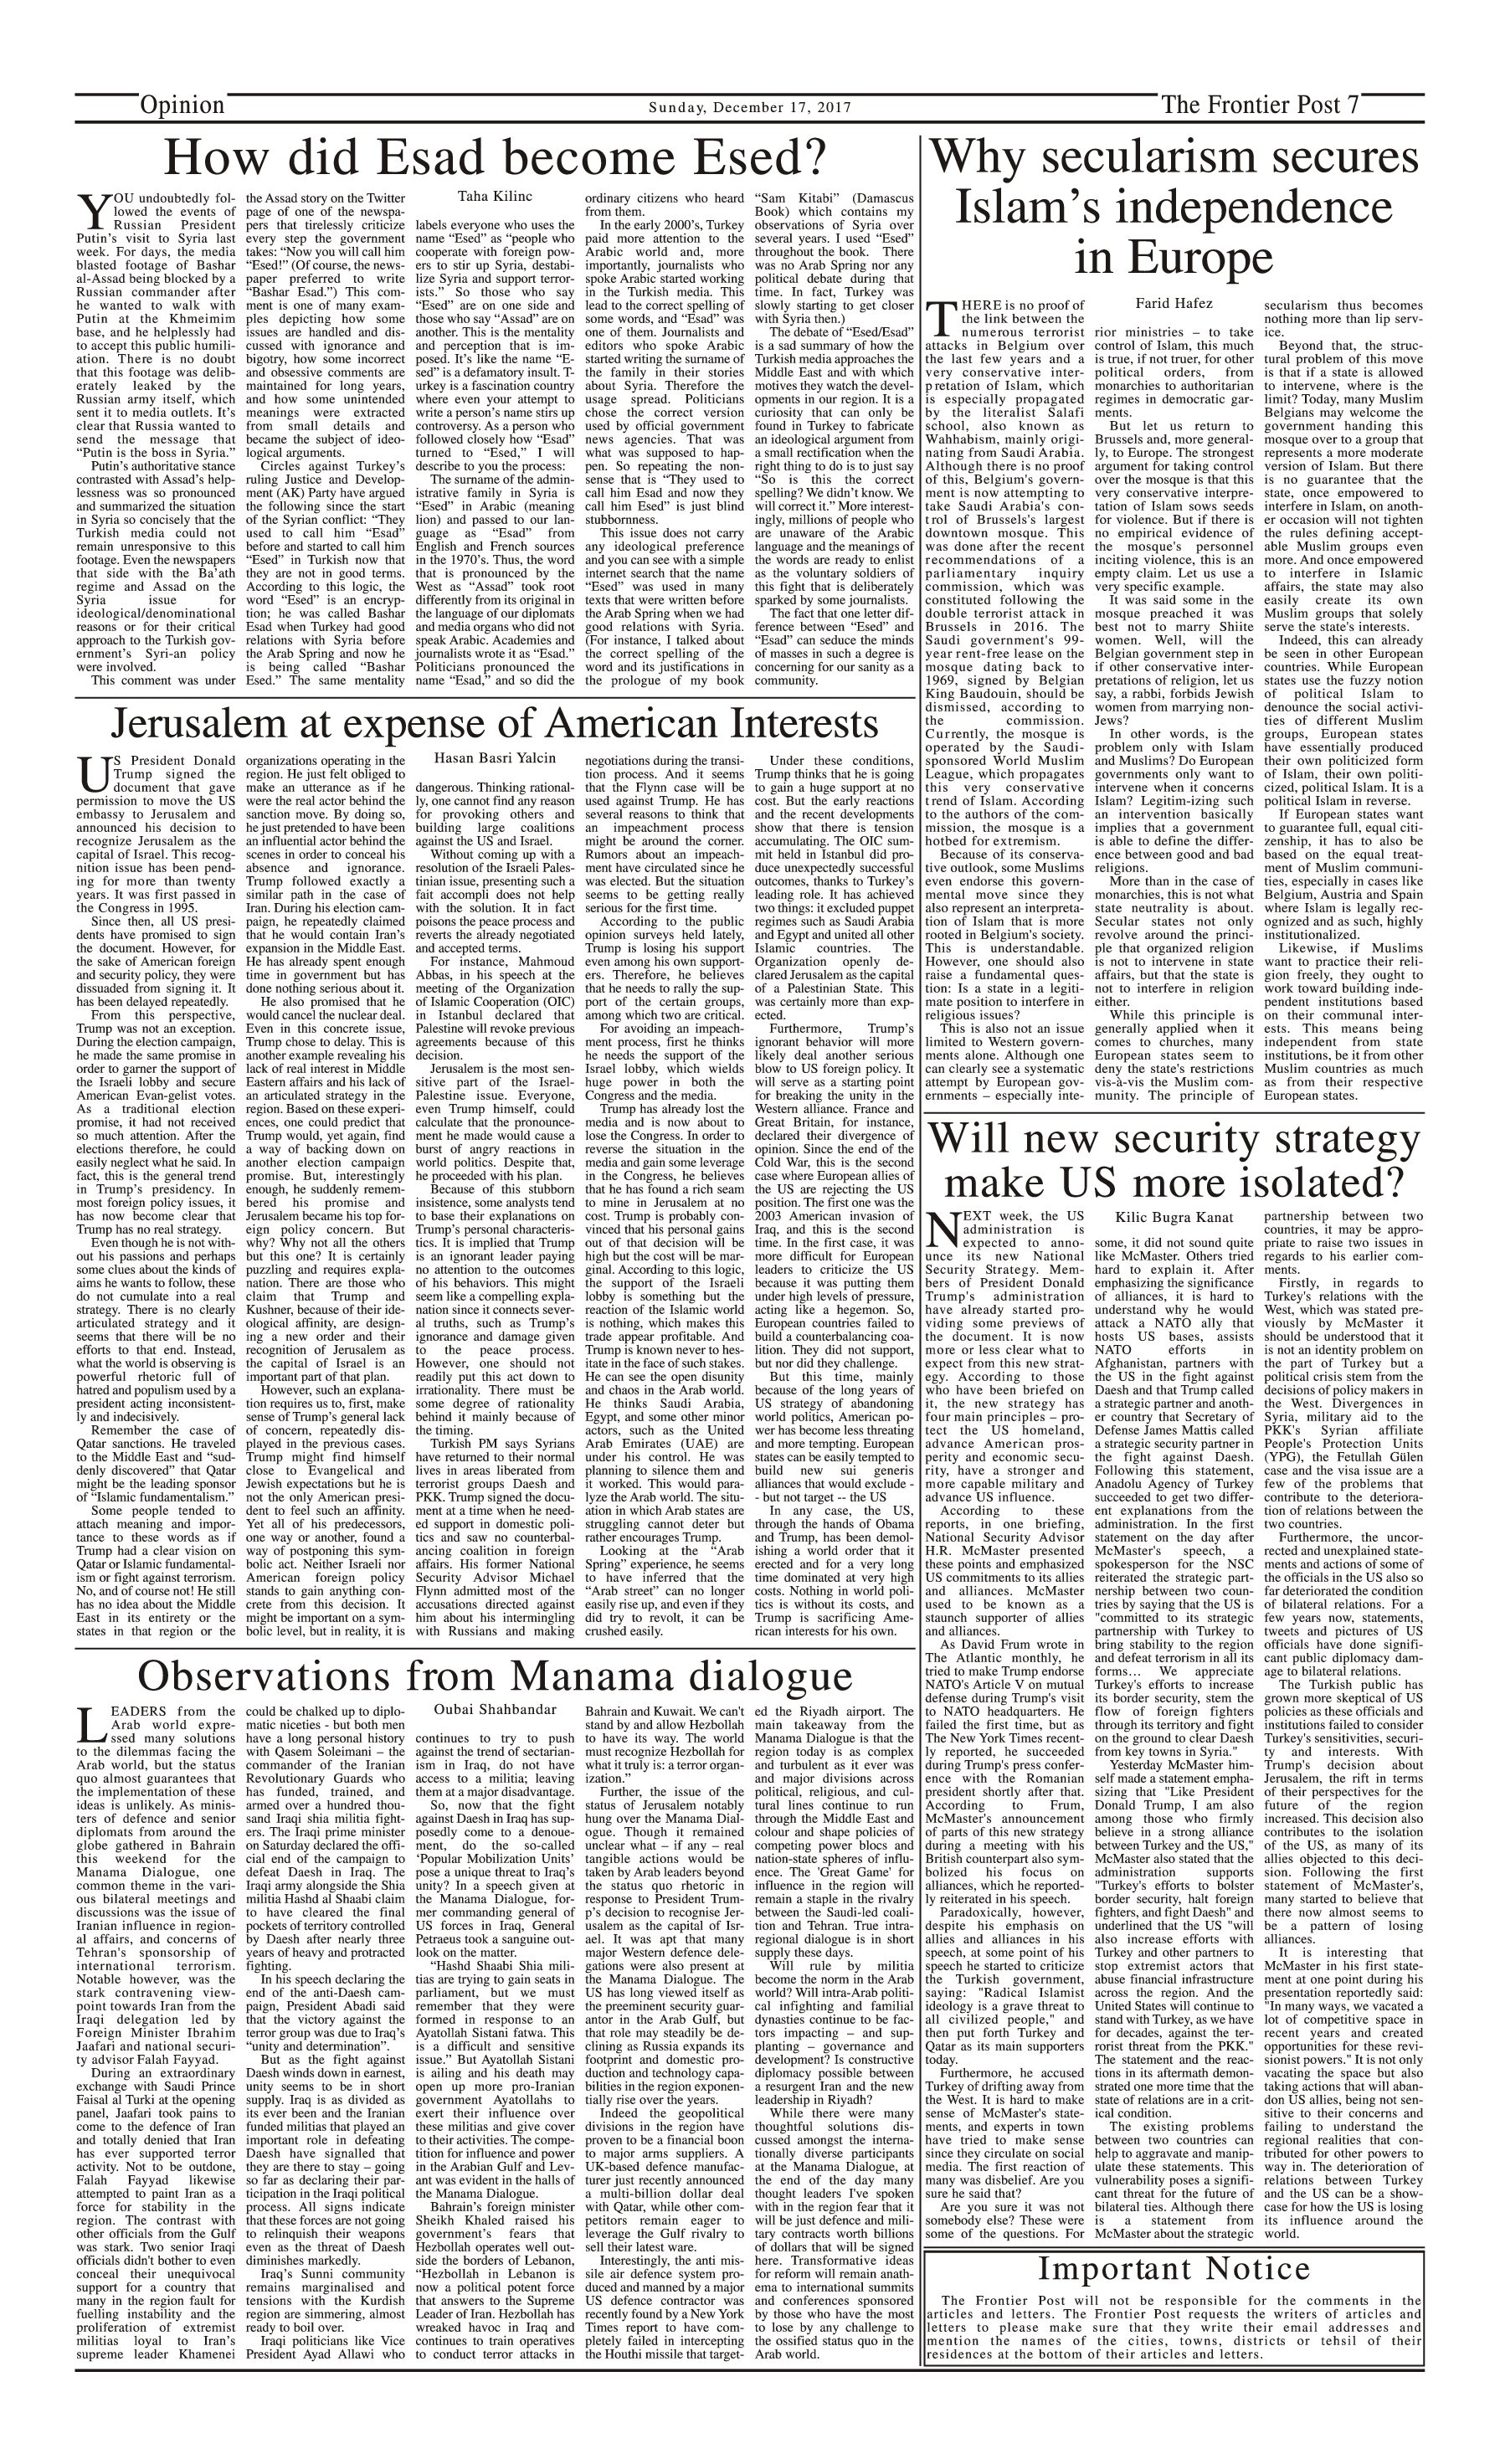 Opinion Page 17-12